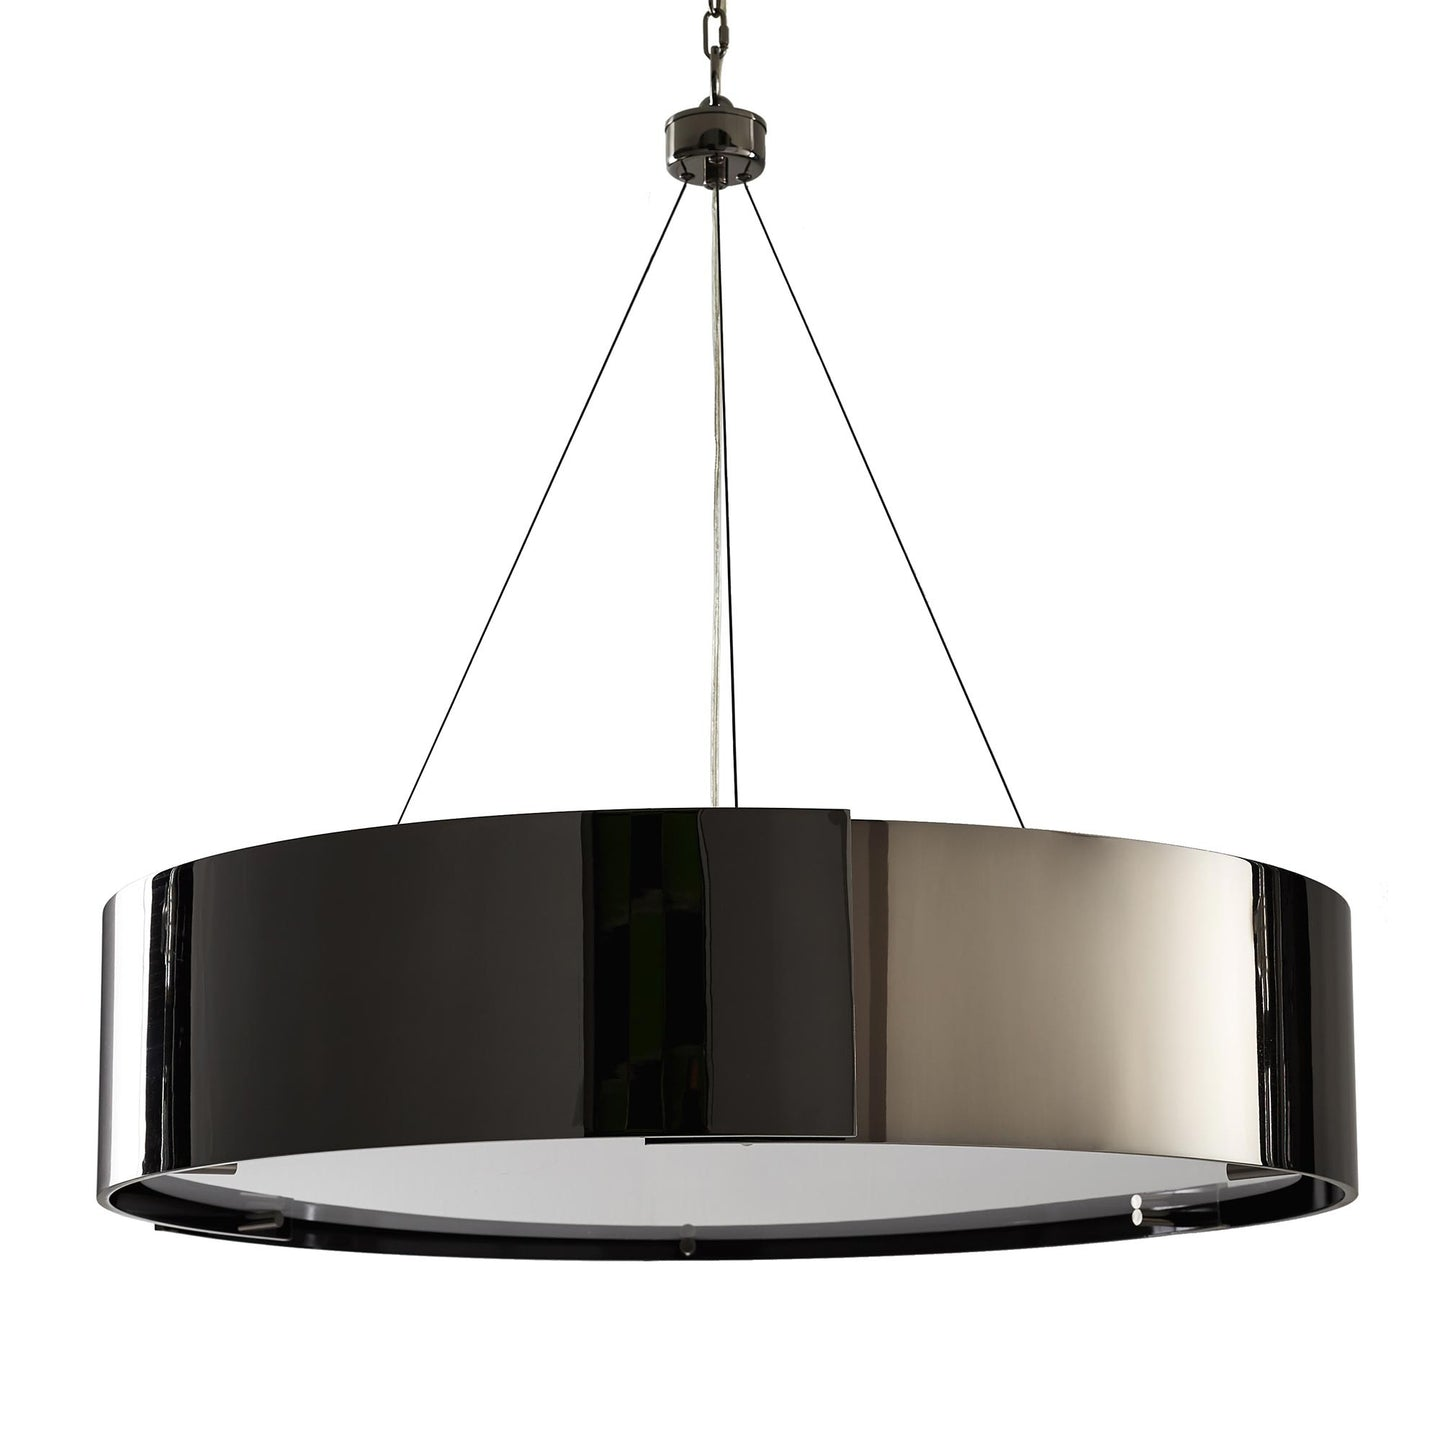 Arteriors home dante medium chandelier black nickel clayton gray home arteriors home dante medium chandelier steel black nickel arubaitofo Choice Image